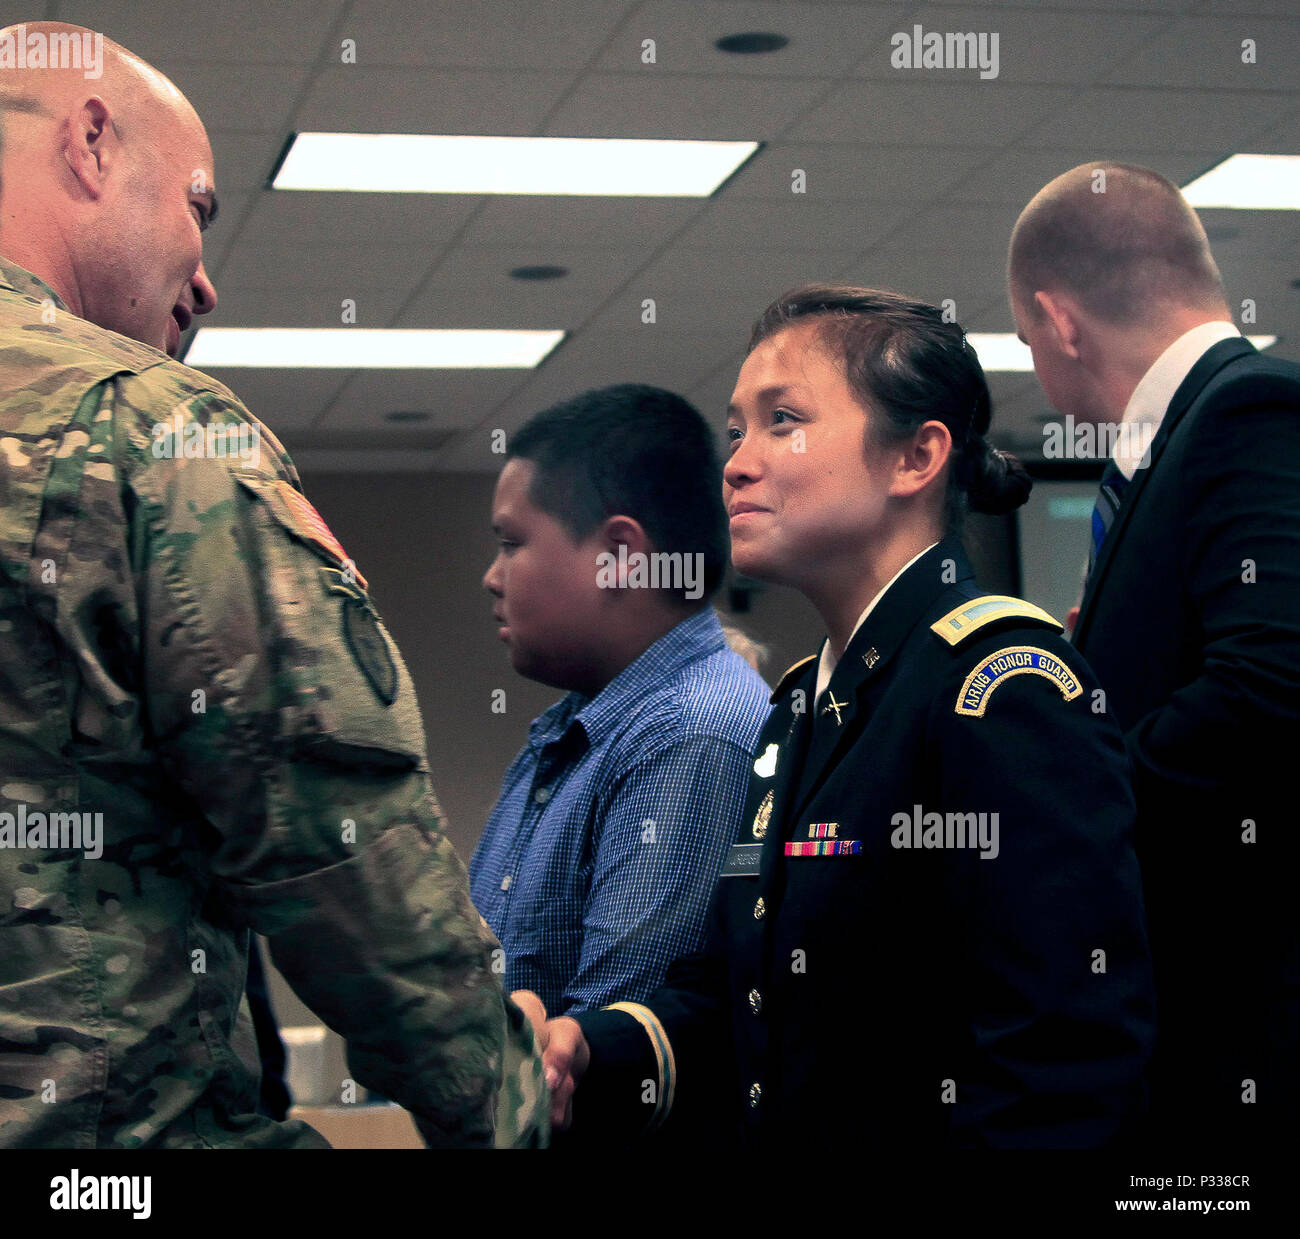 Iowa Army National Guard 2nd Lt. Trang Jorgensen, Headquarters and Headquarters Company, 1st Battalion, 168th Infantry, shakes hands with Lt. Col. Aaron Baugher, 1st Battalion, 168th Infantry Battalion commander, after receiving her commission during a ceremony on Camp Dodge Joint Maneuver Training Center in Johnston, Iowa, on Aug. 20. Jorgensen is the first female officer in the Iowa Army National Guard to select a combat arms branch. (U.S. Army National Guard photo by Sgt. Christie Smith) - Stock Image